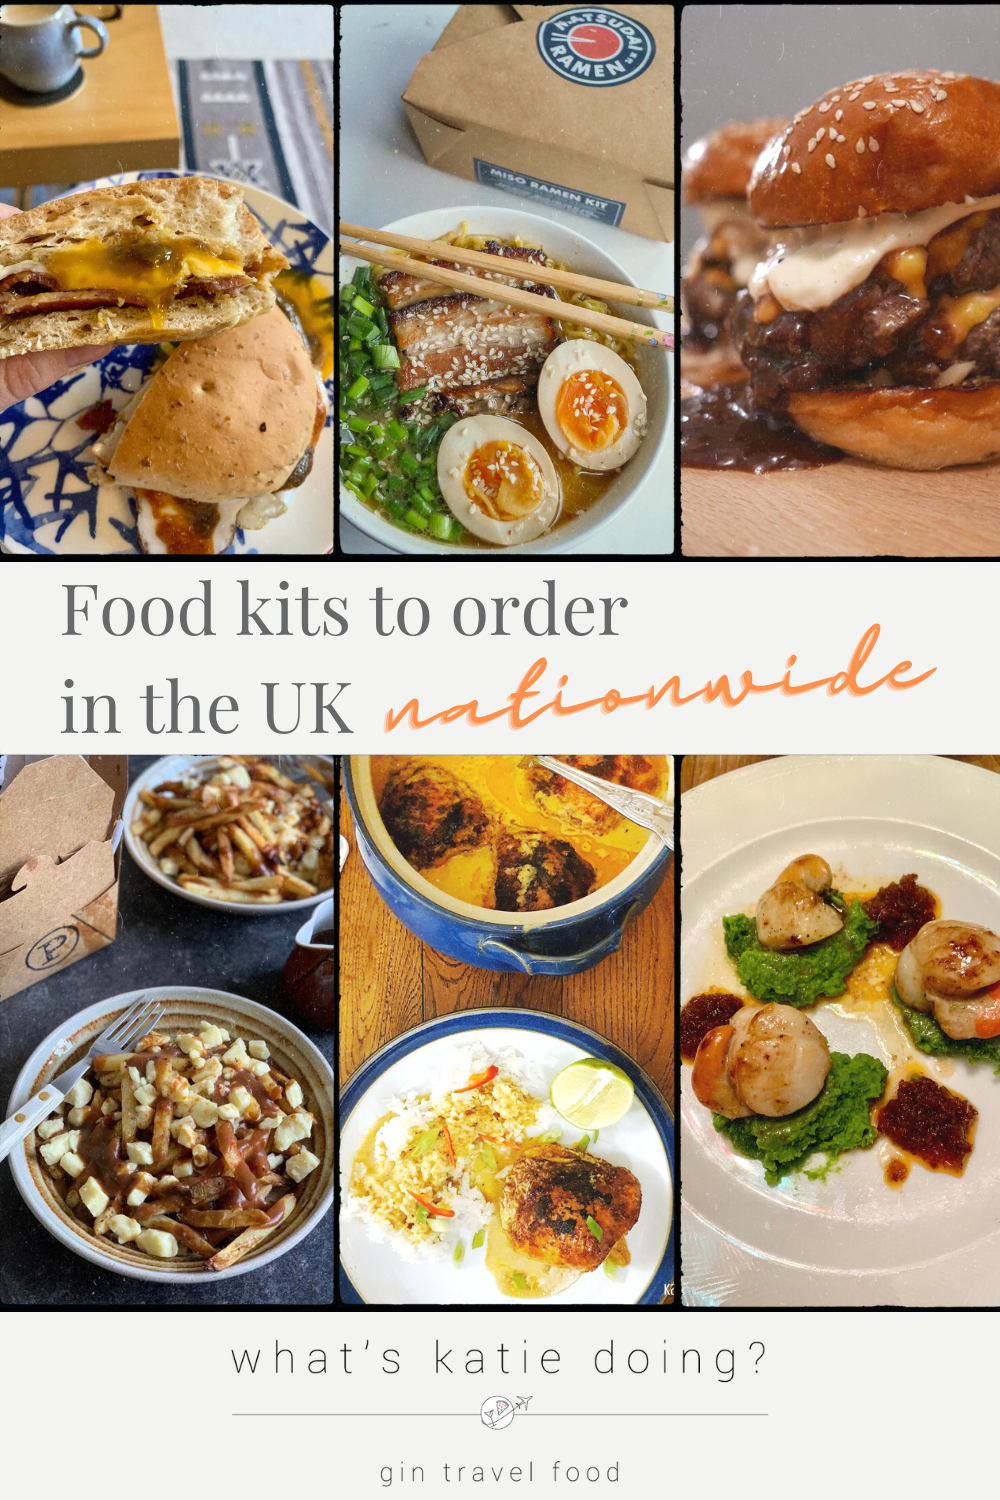 6 different dishes from food kits: bacon sandwich, burger, poutine, ramen, Vietnamese and scallops